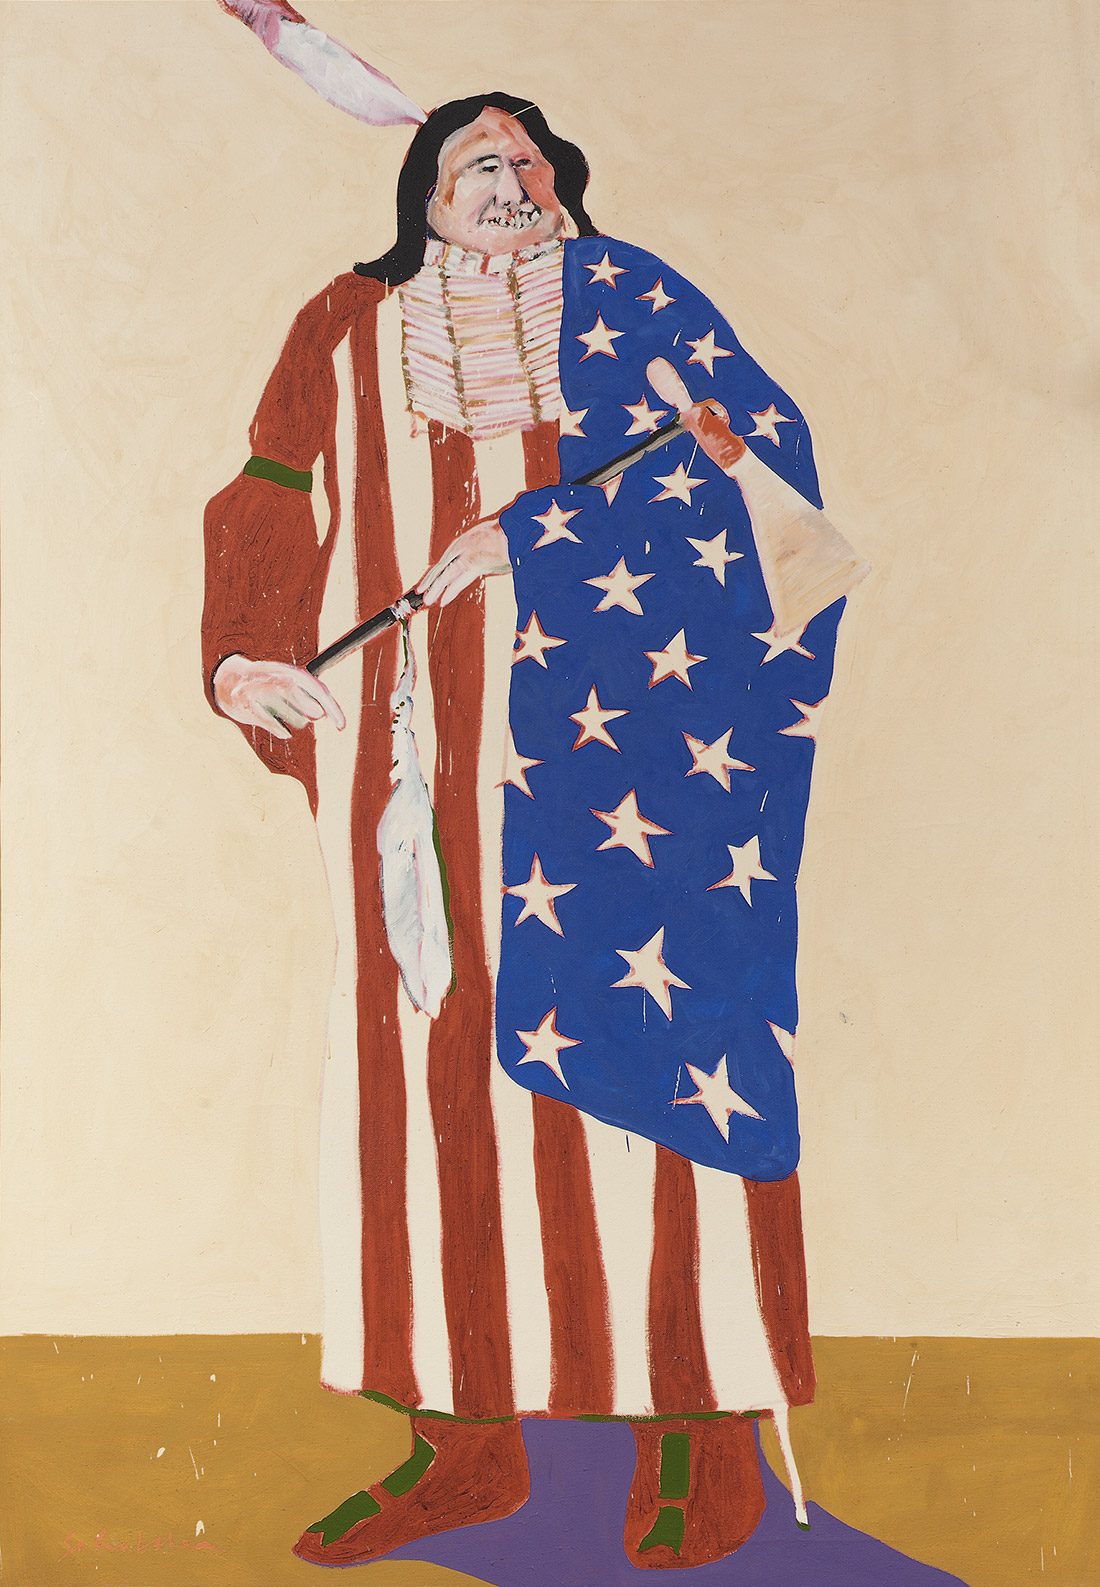 Fritz Scholder, The American Indian, 1970